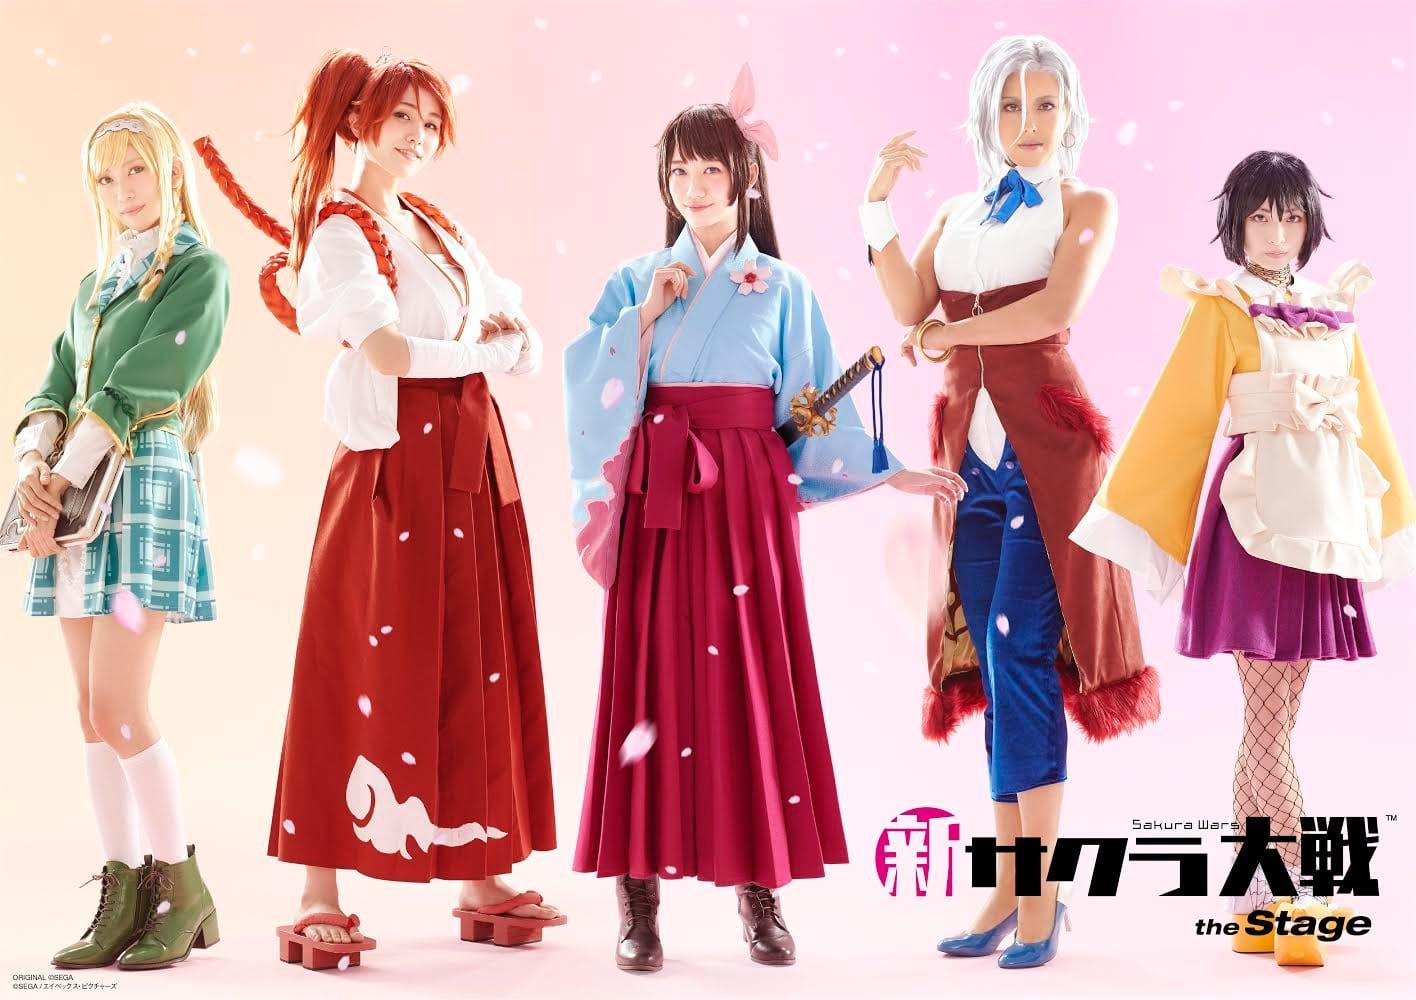 Love Sakura Wars? Watch 10 Minutes of The Musical with English Subtitles 1